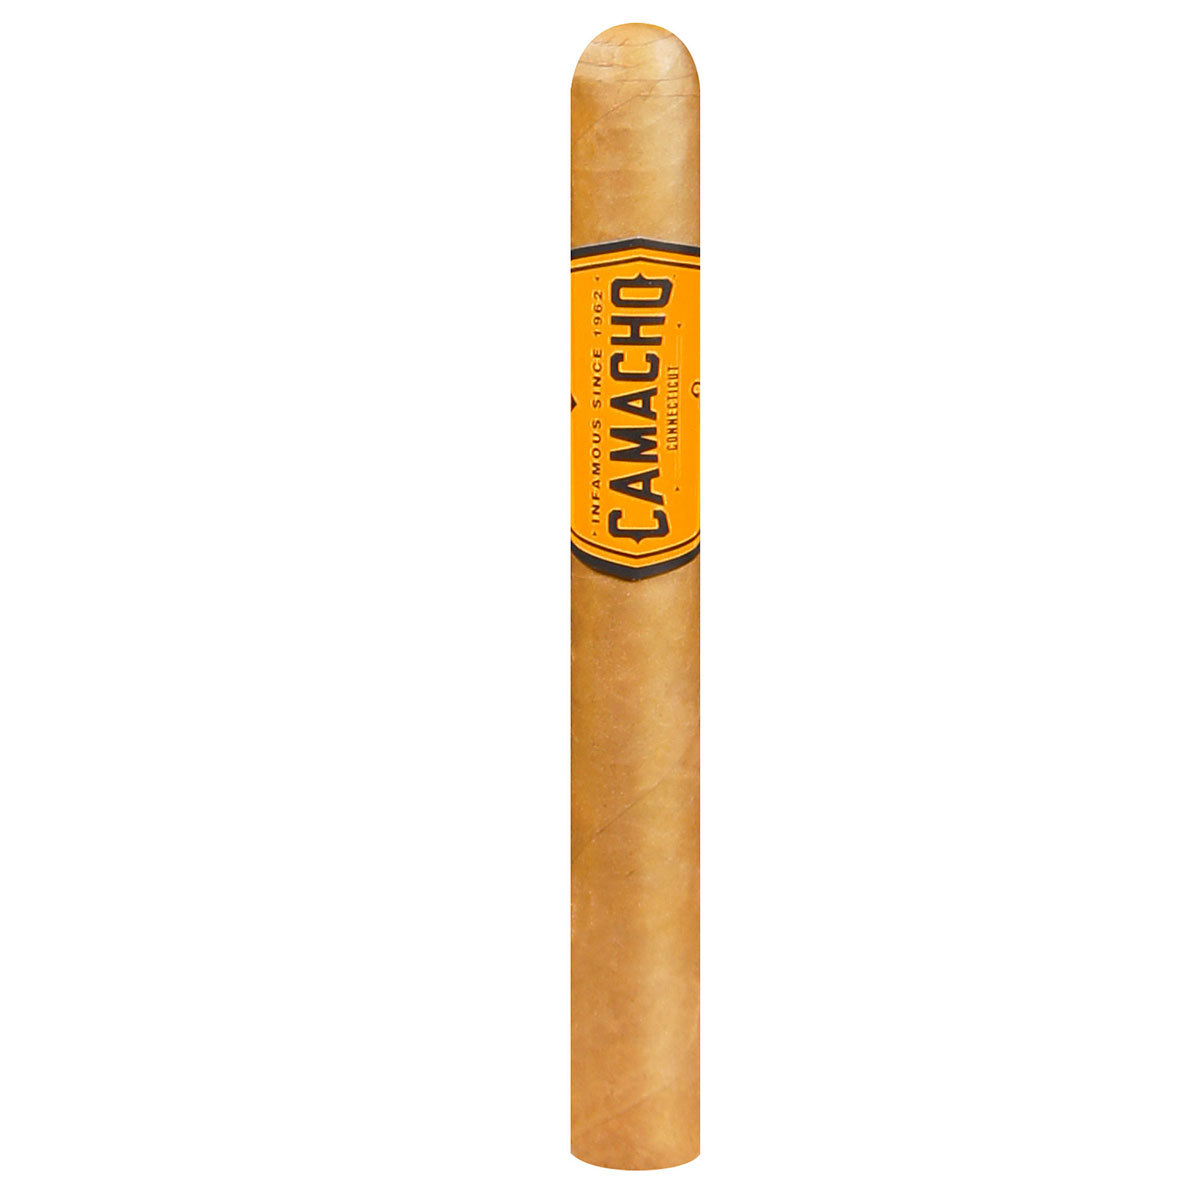 Camacho Connecticut Churchill Single